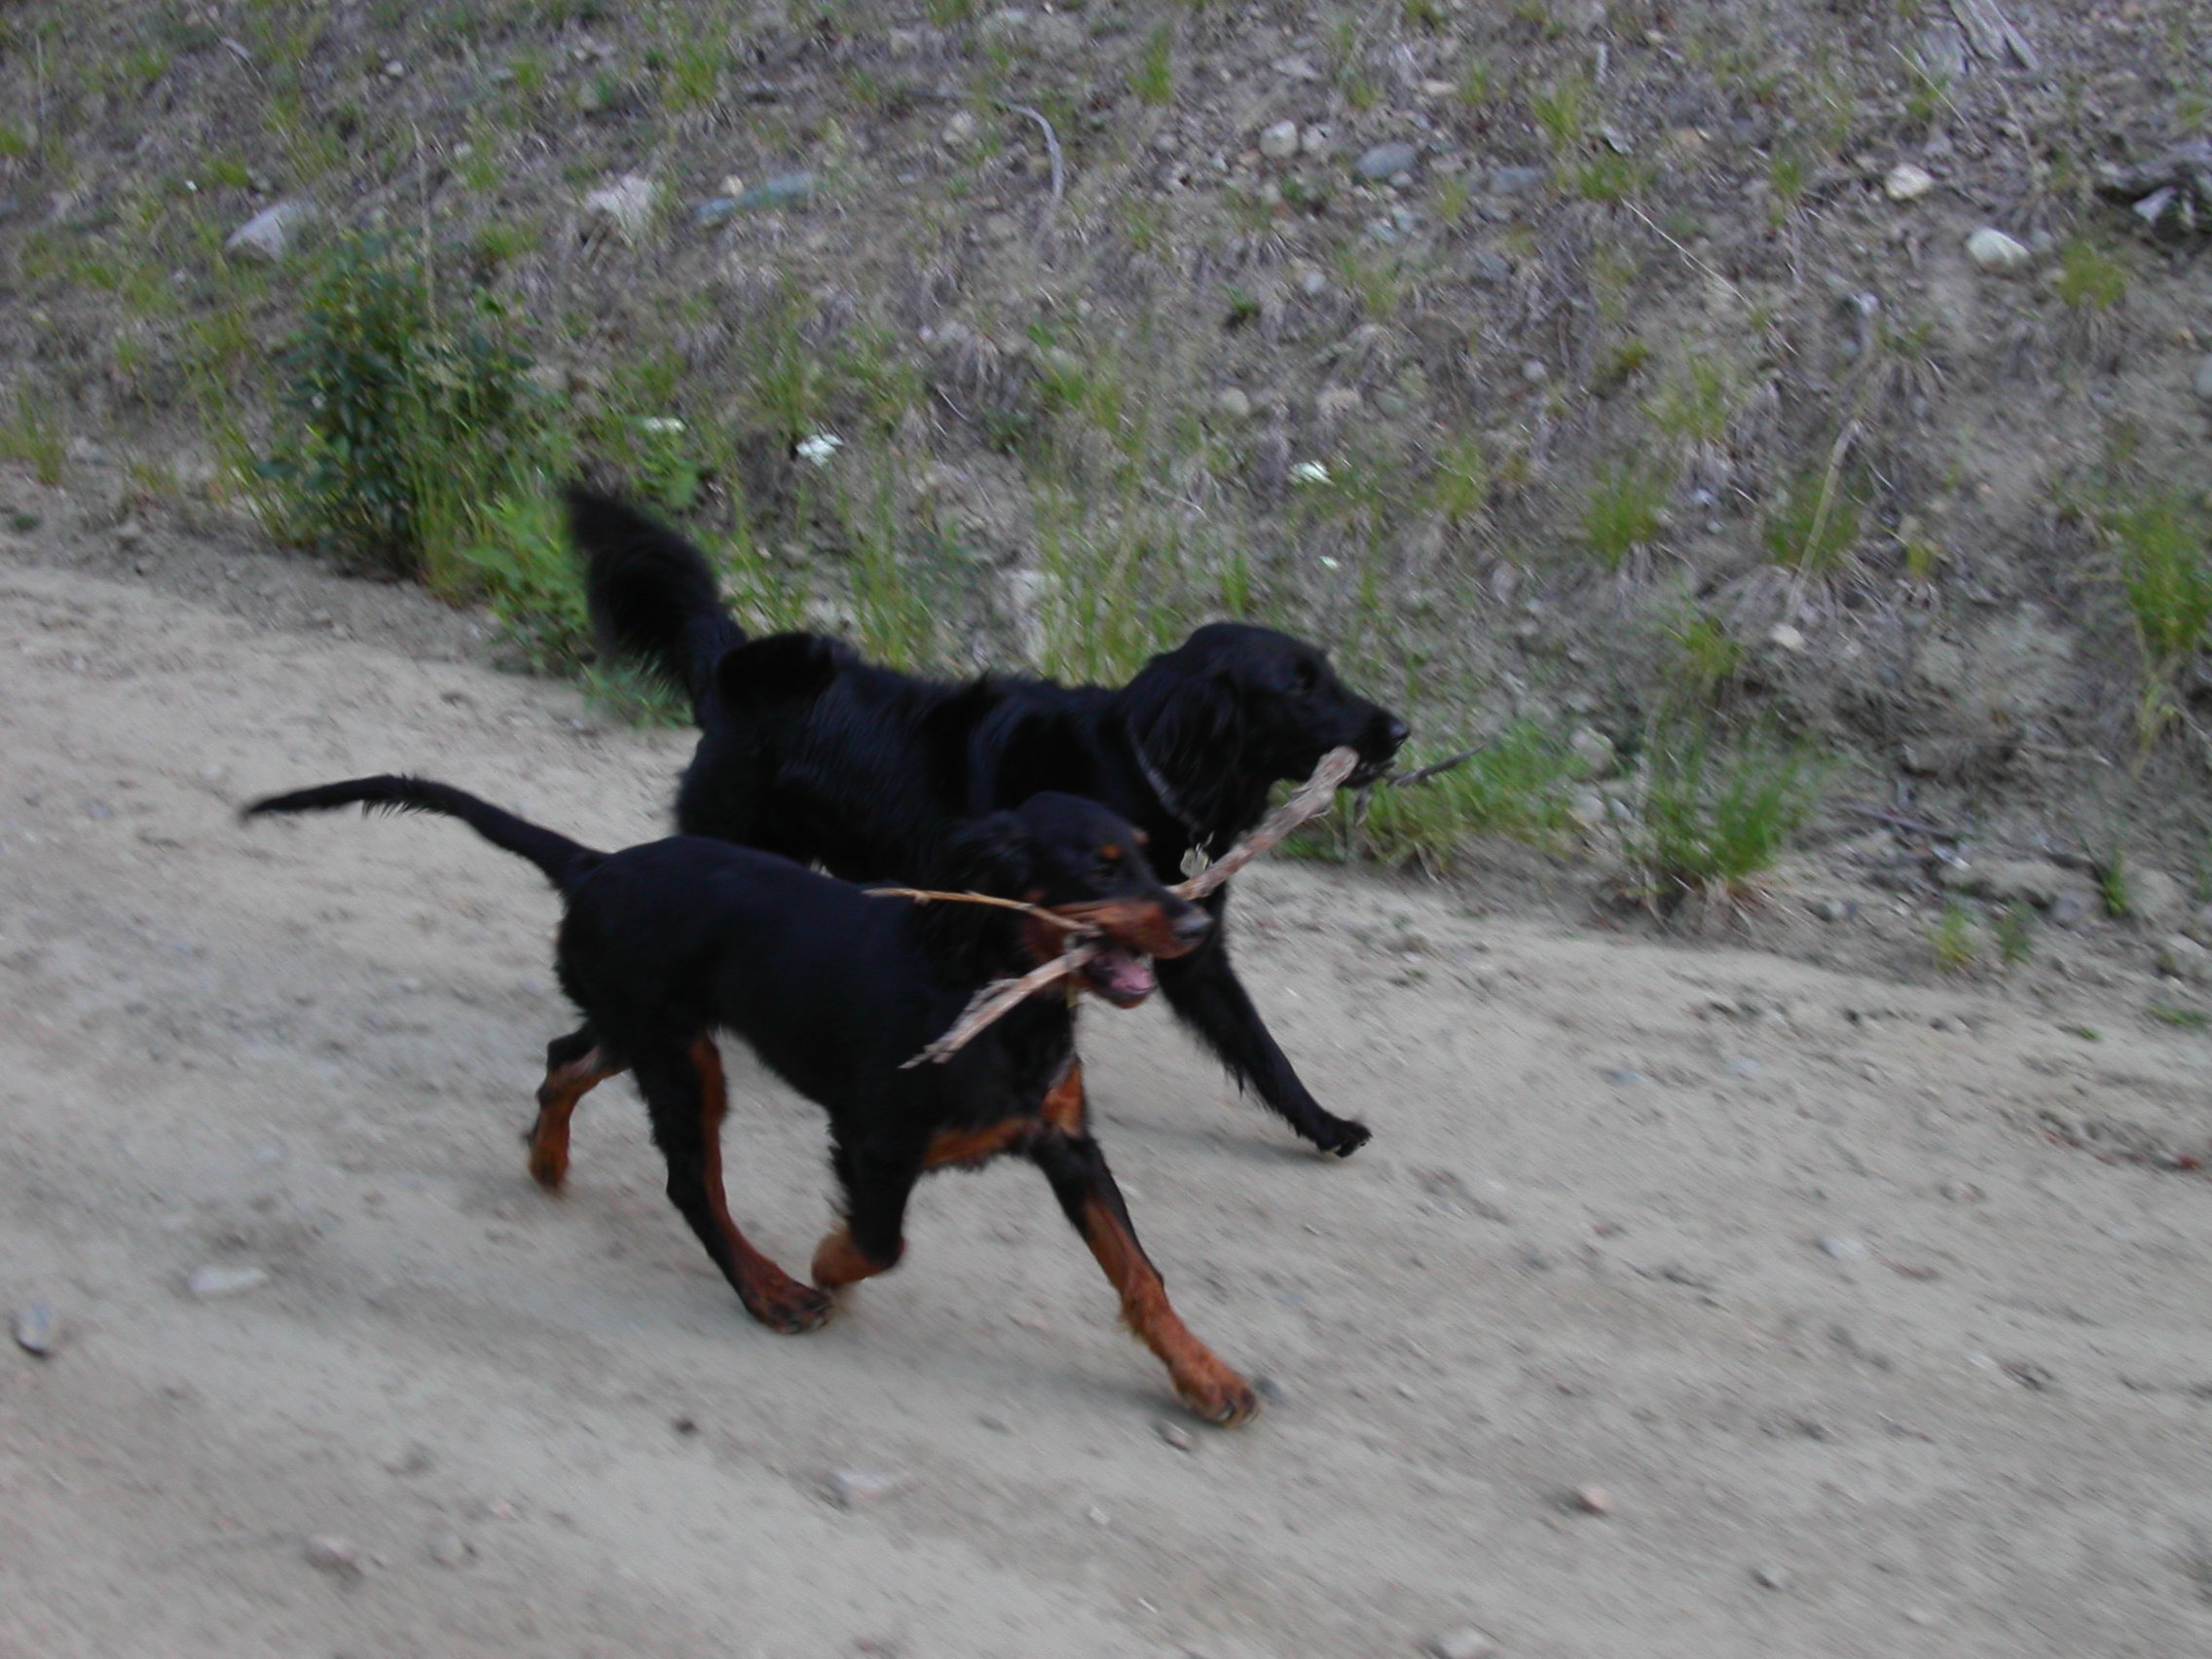 Two dogs holding a stick together on dirt path